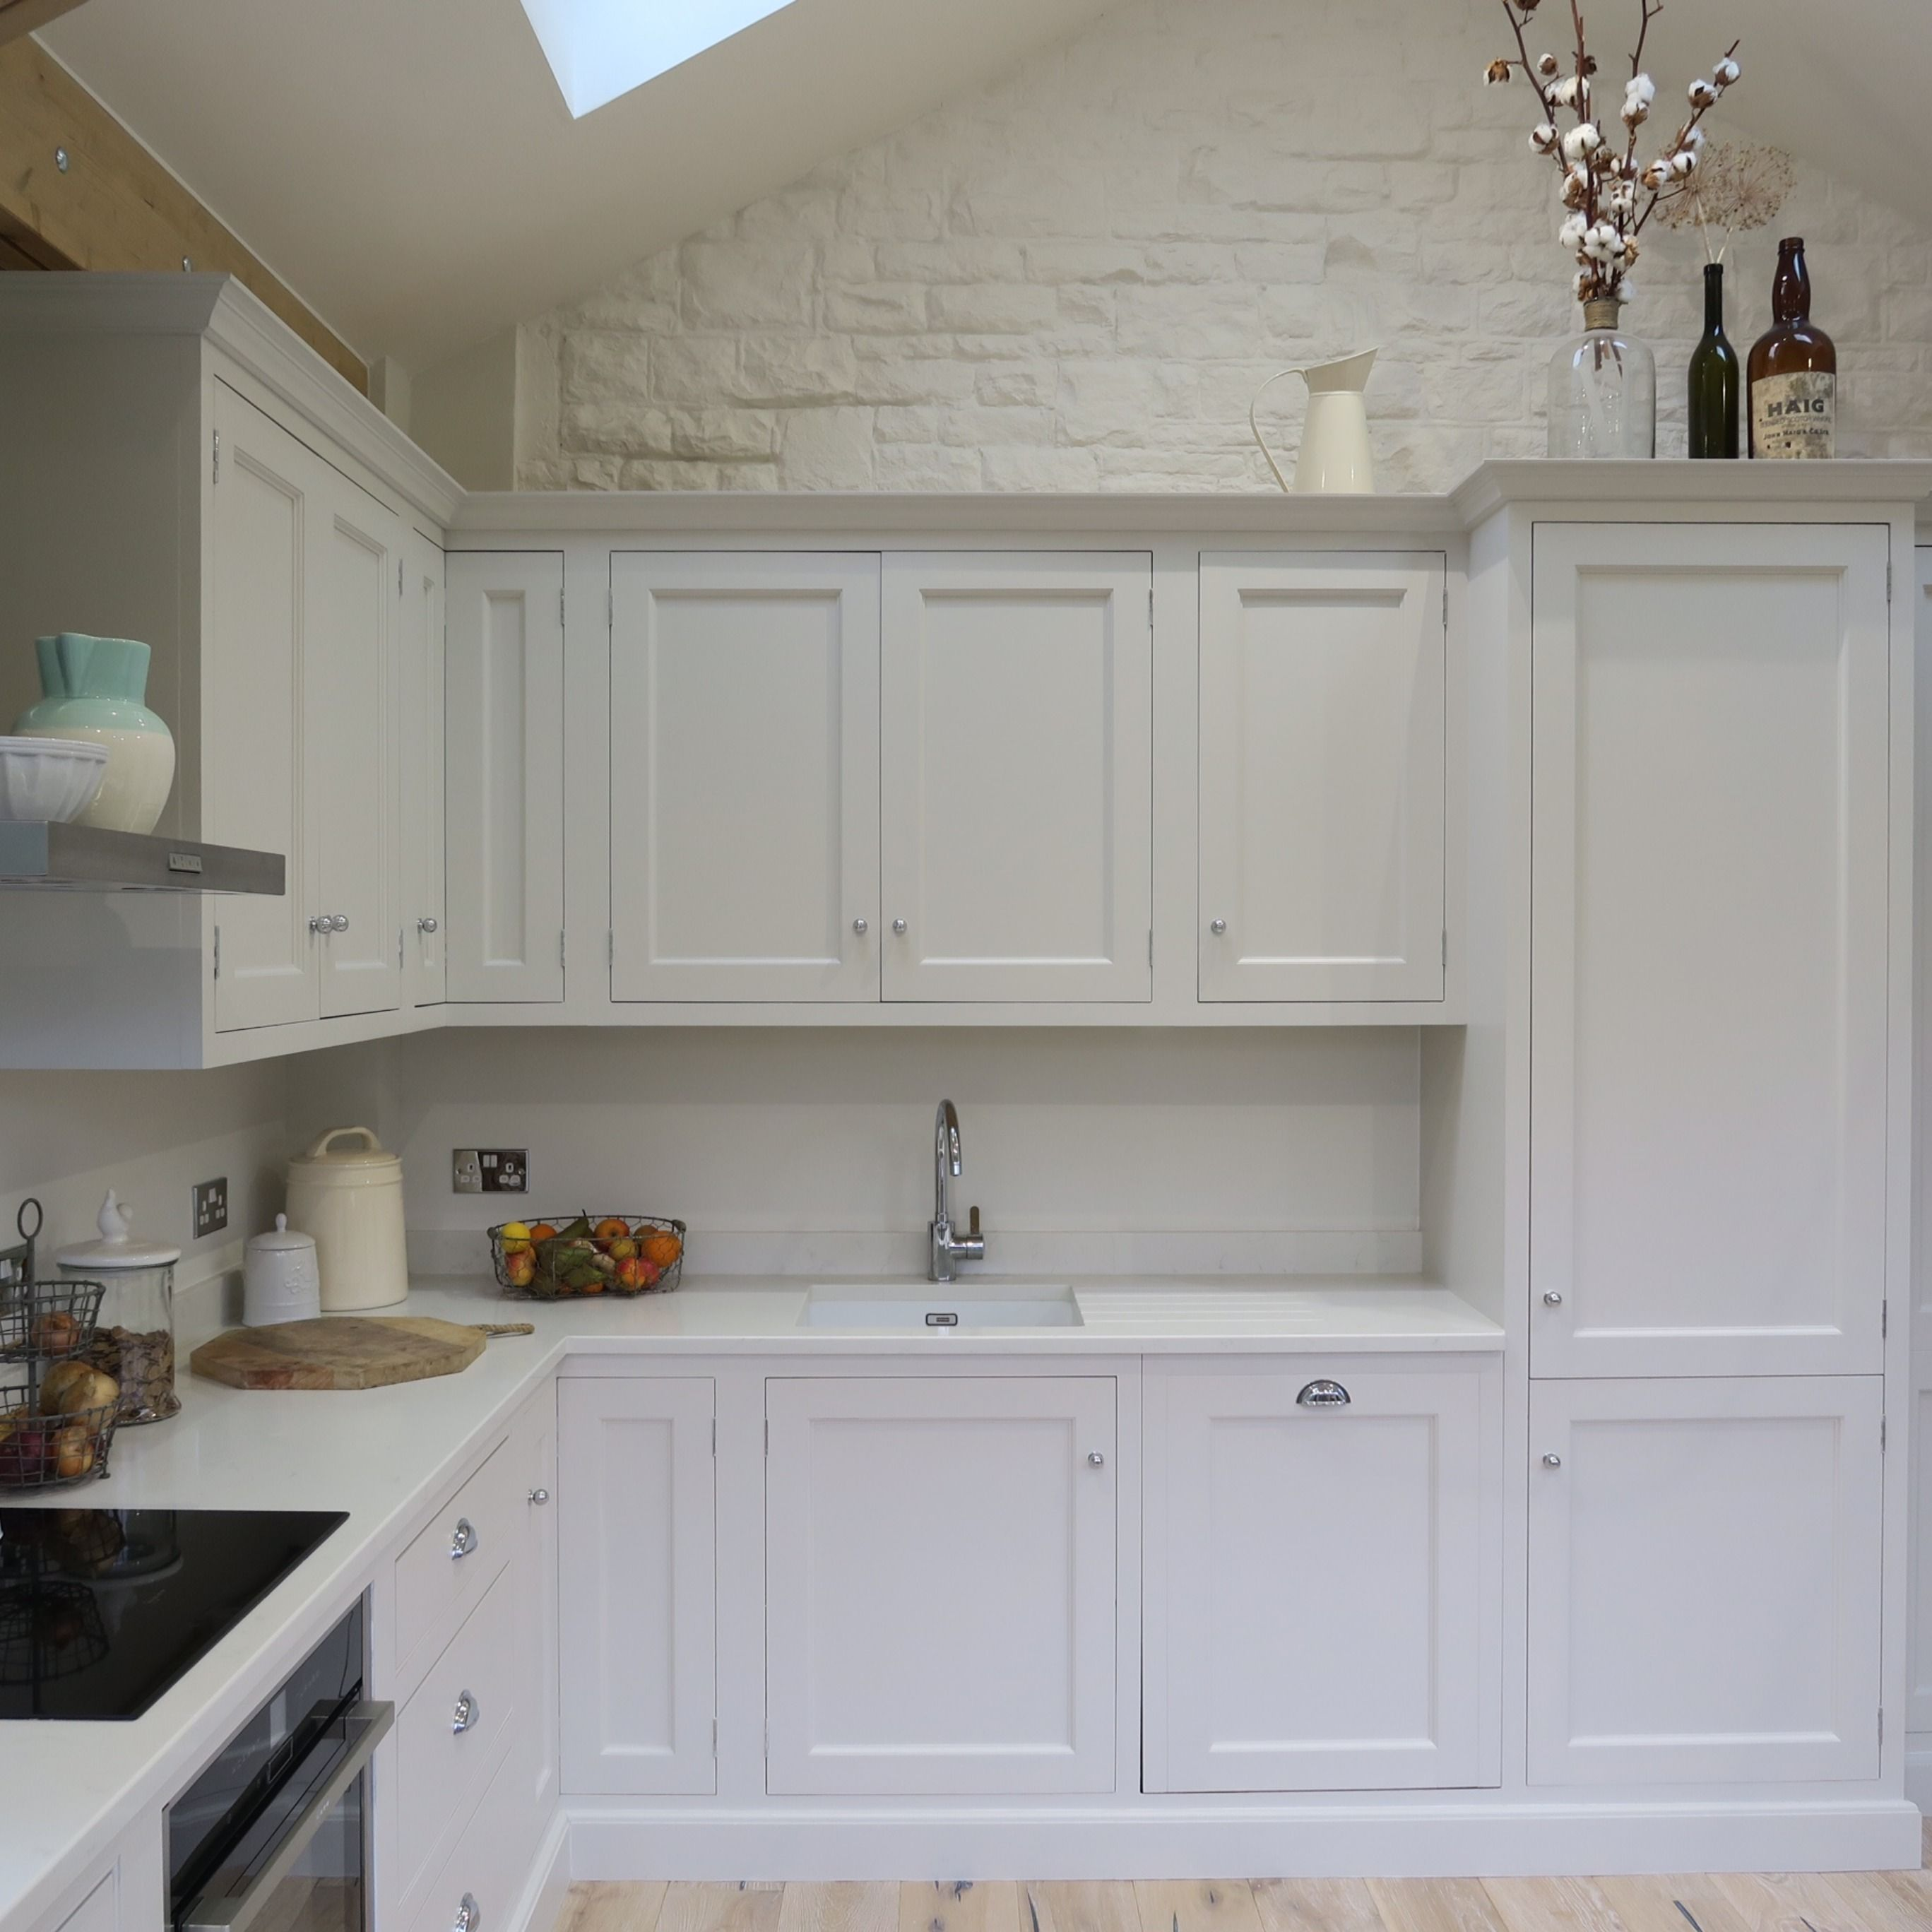 Beaded handmade kitchen cabinets painted in a light grey ...